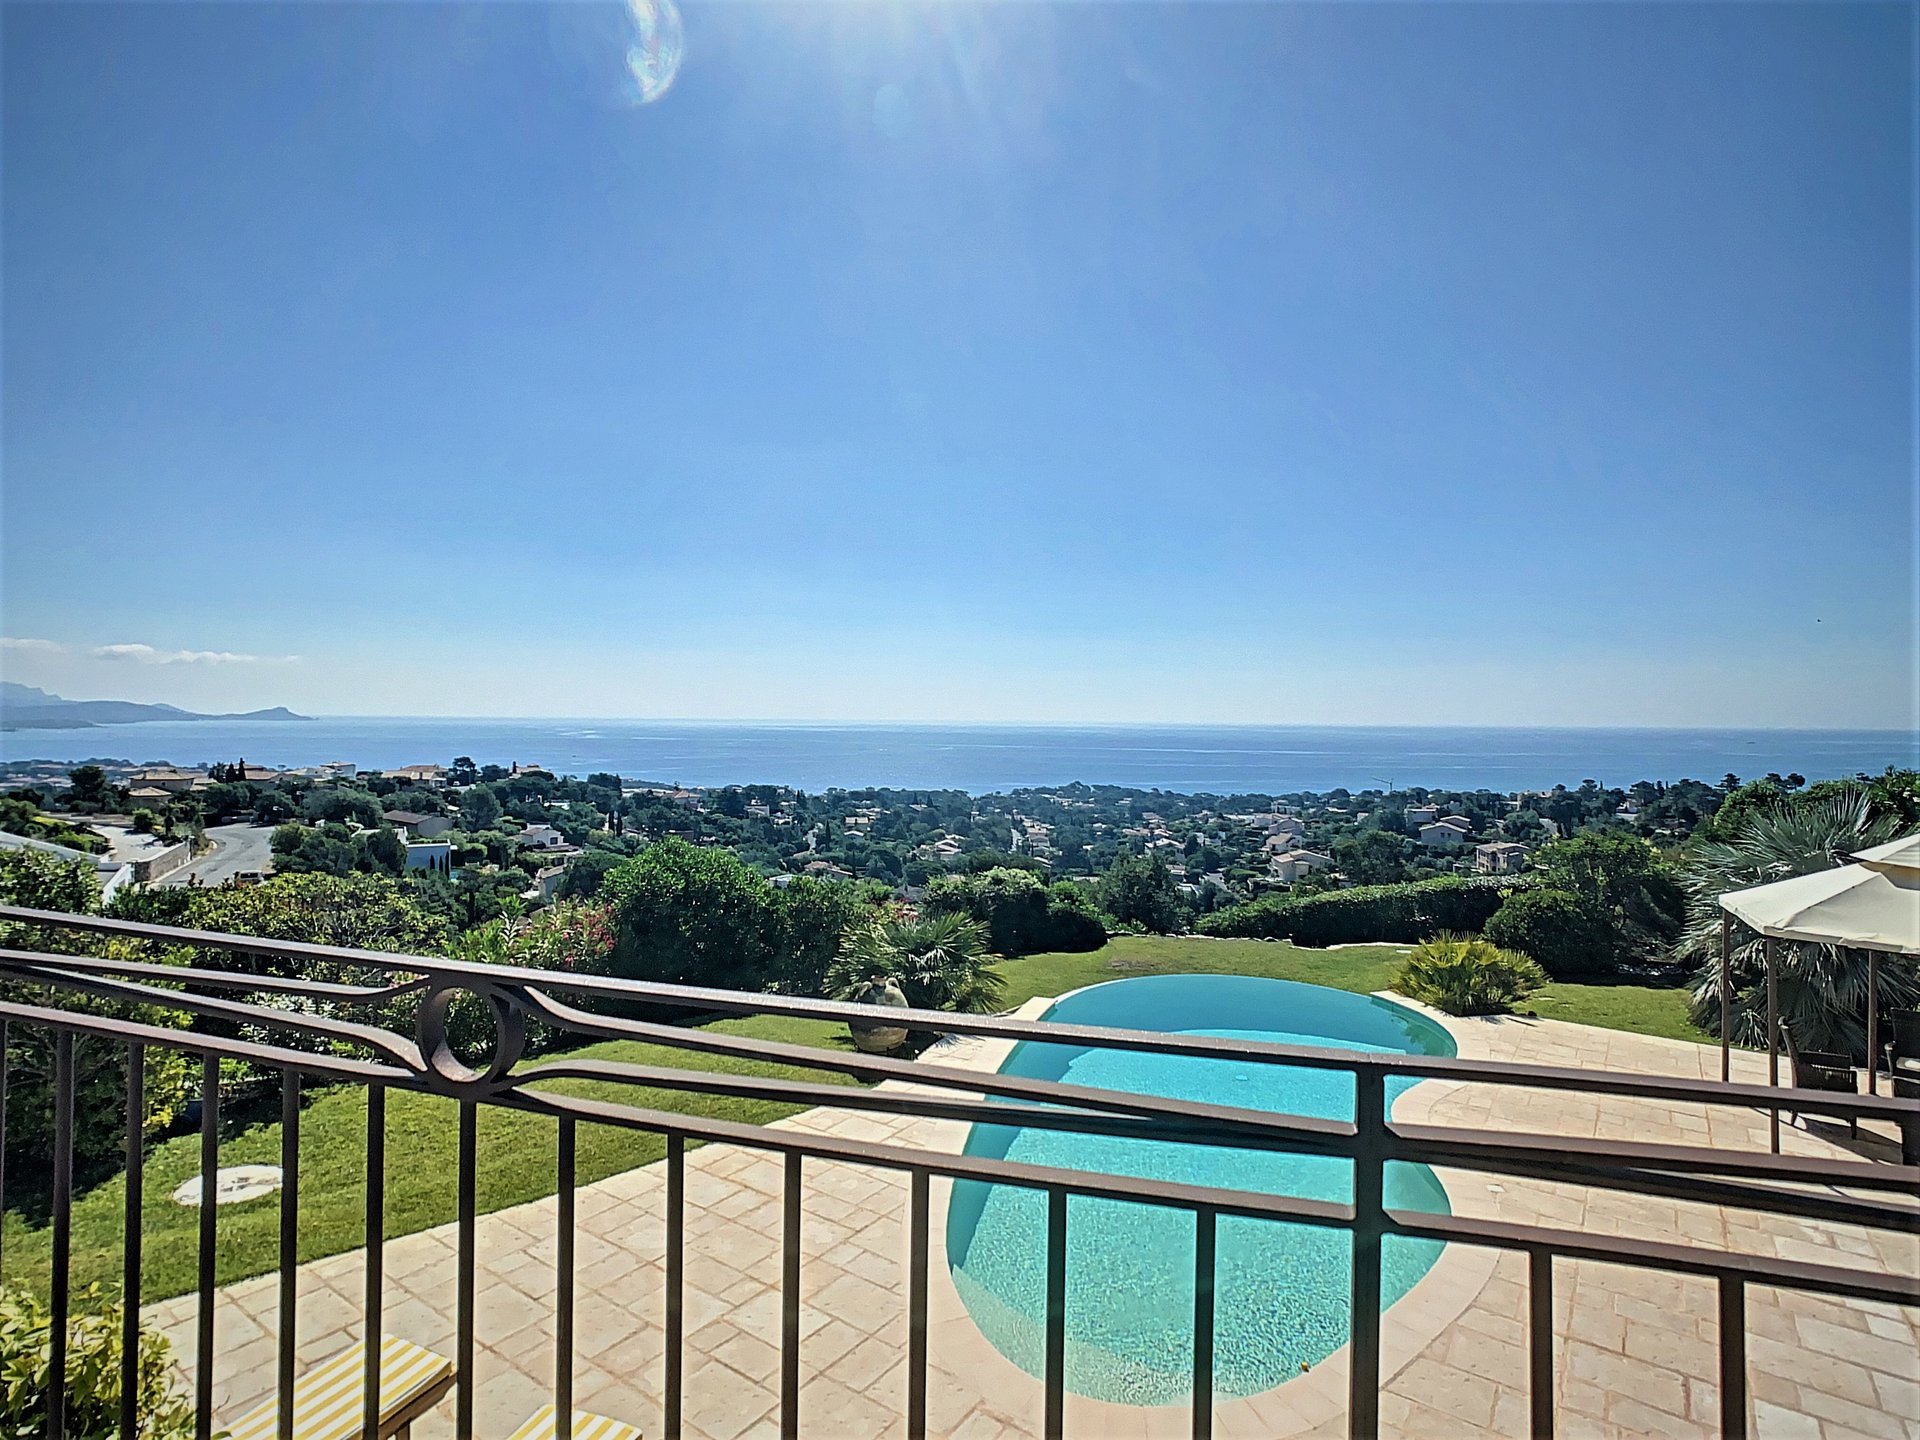 Villa for sale in Les Issambres with amazing sea view